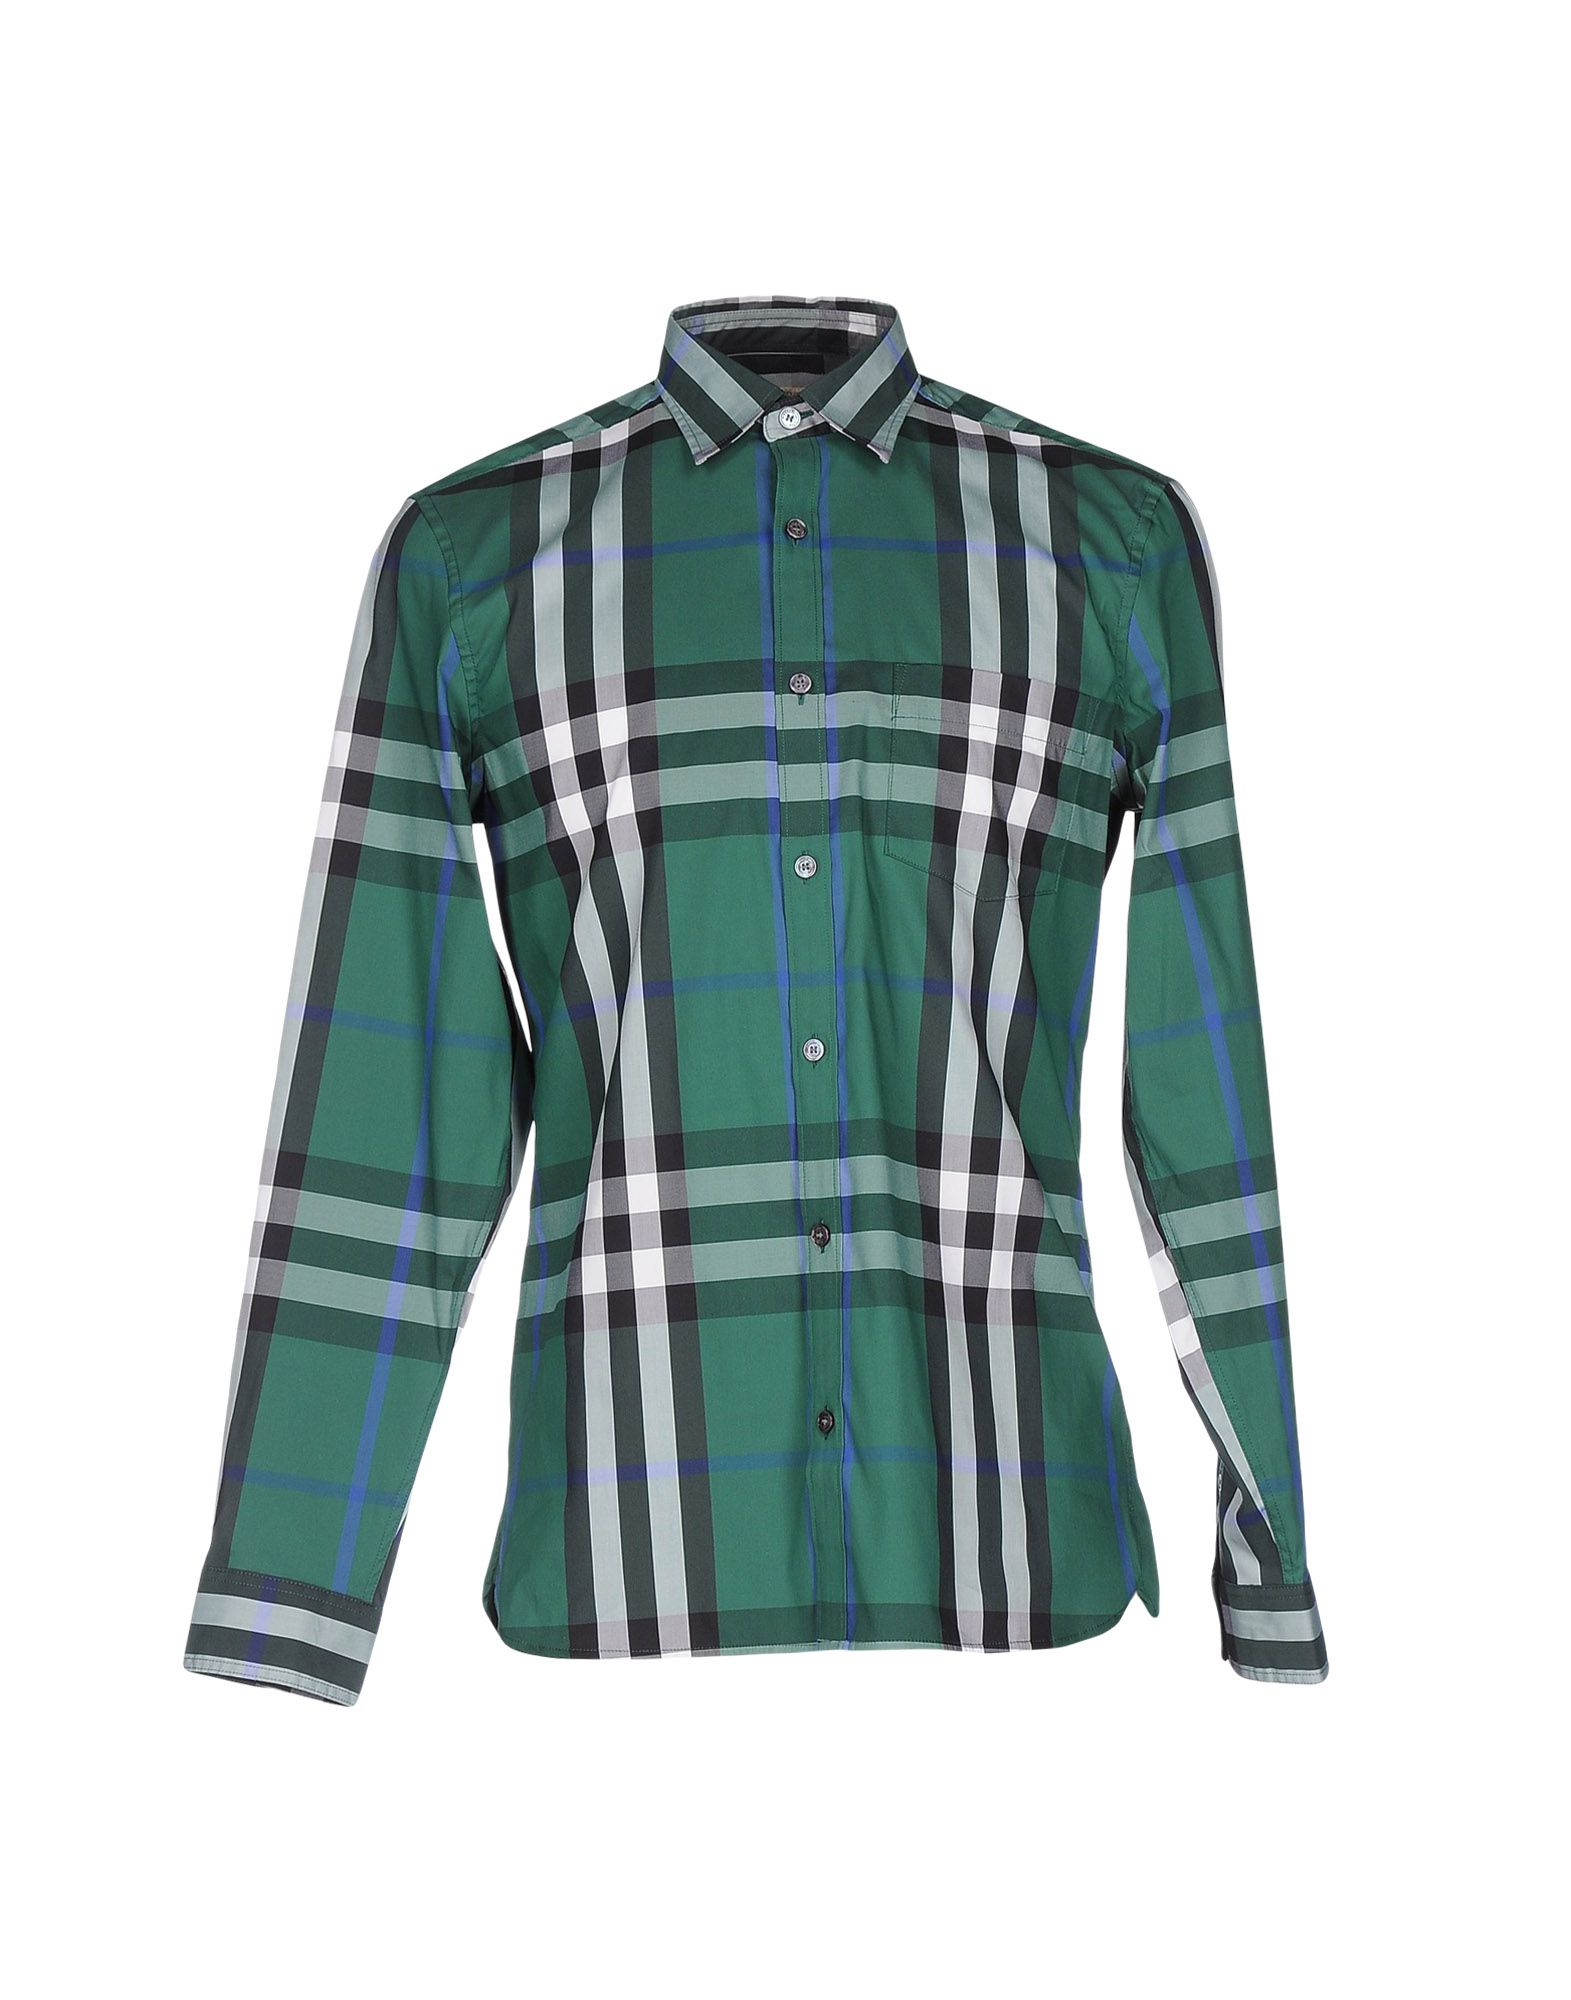 Lyst burberry brit shirt in green for men for Burberry brit green plaid shirt